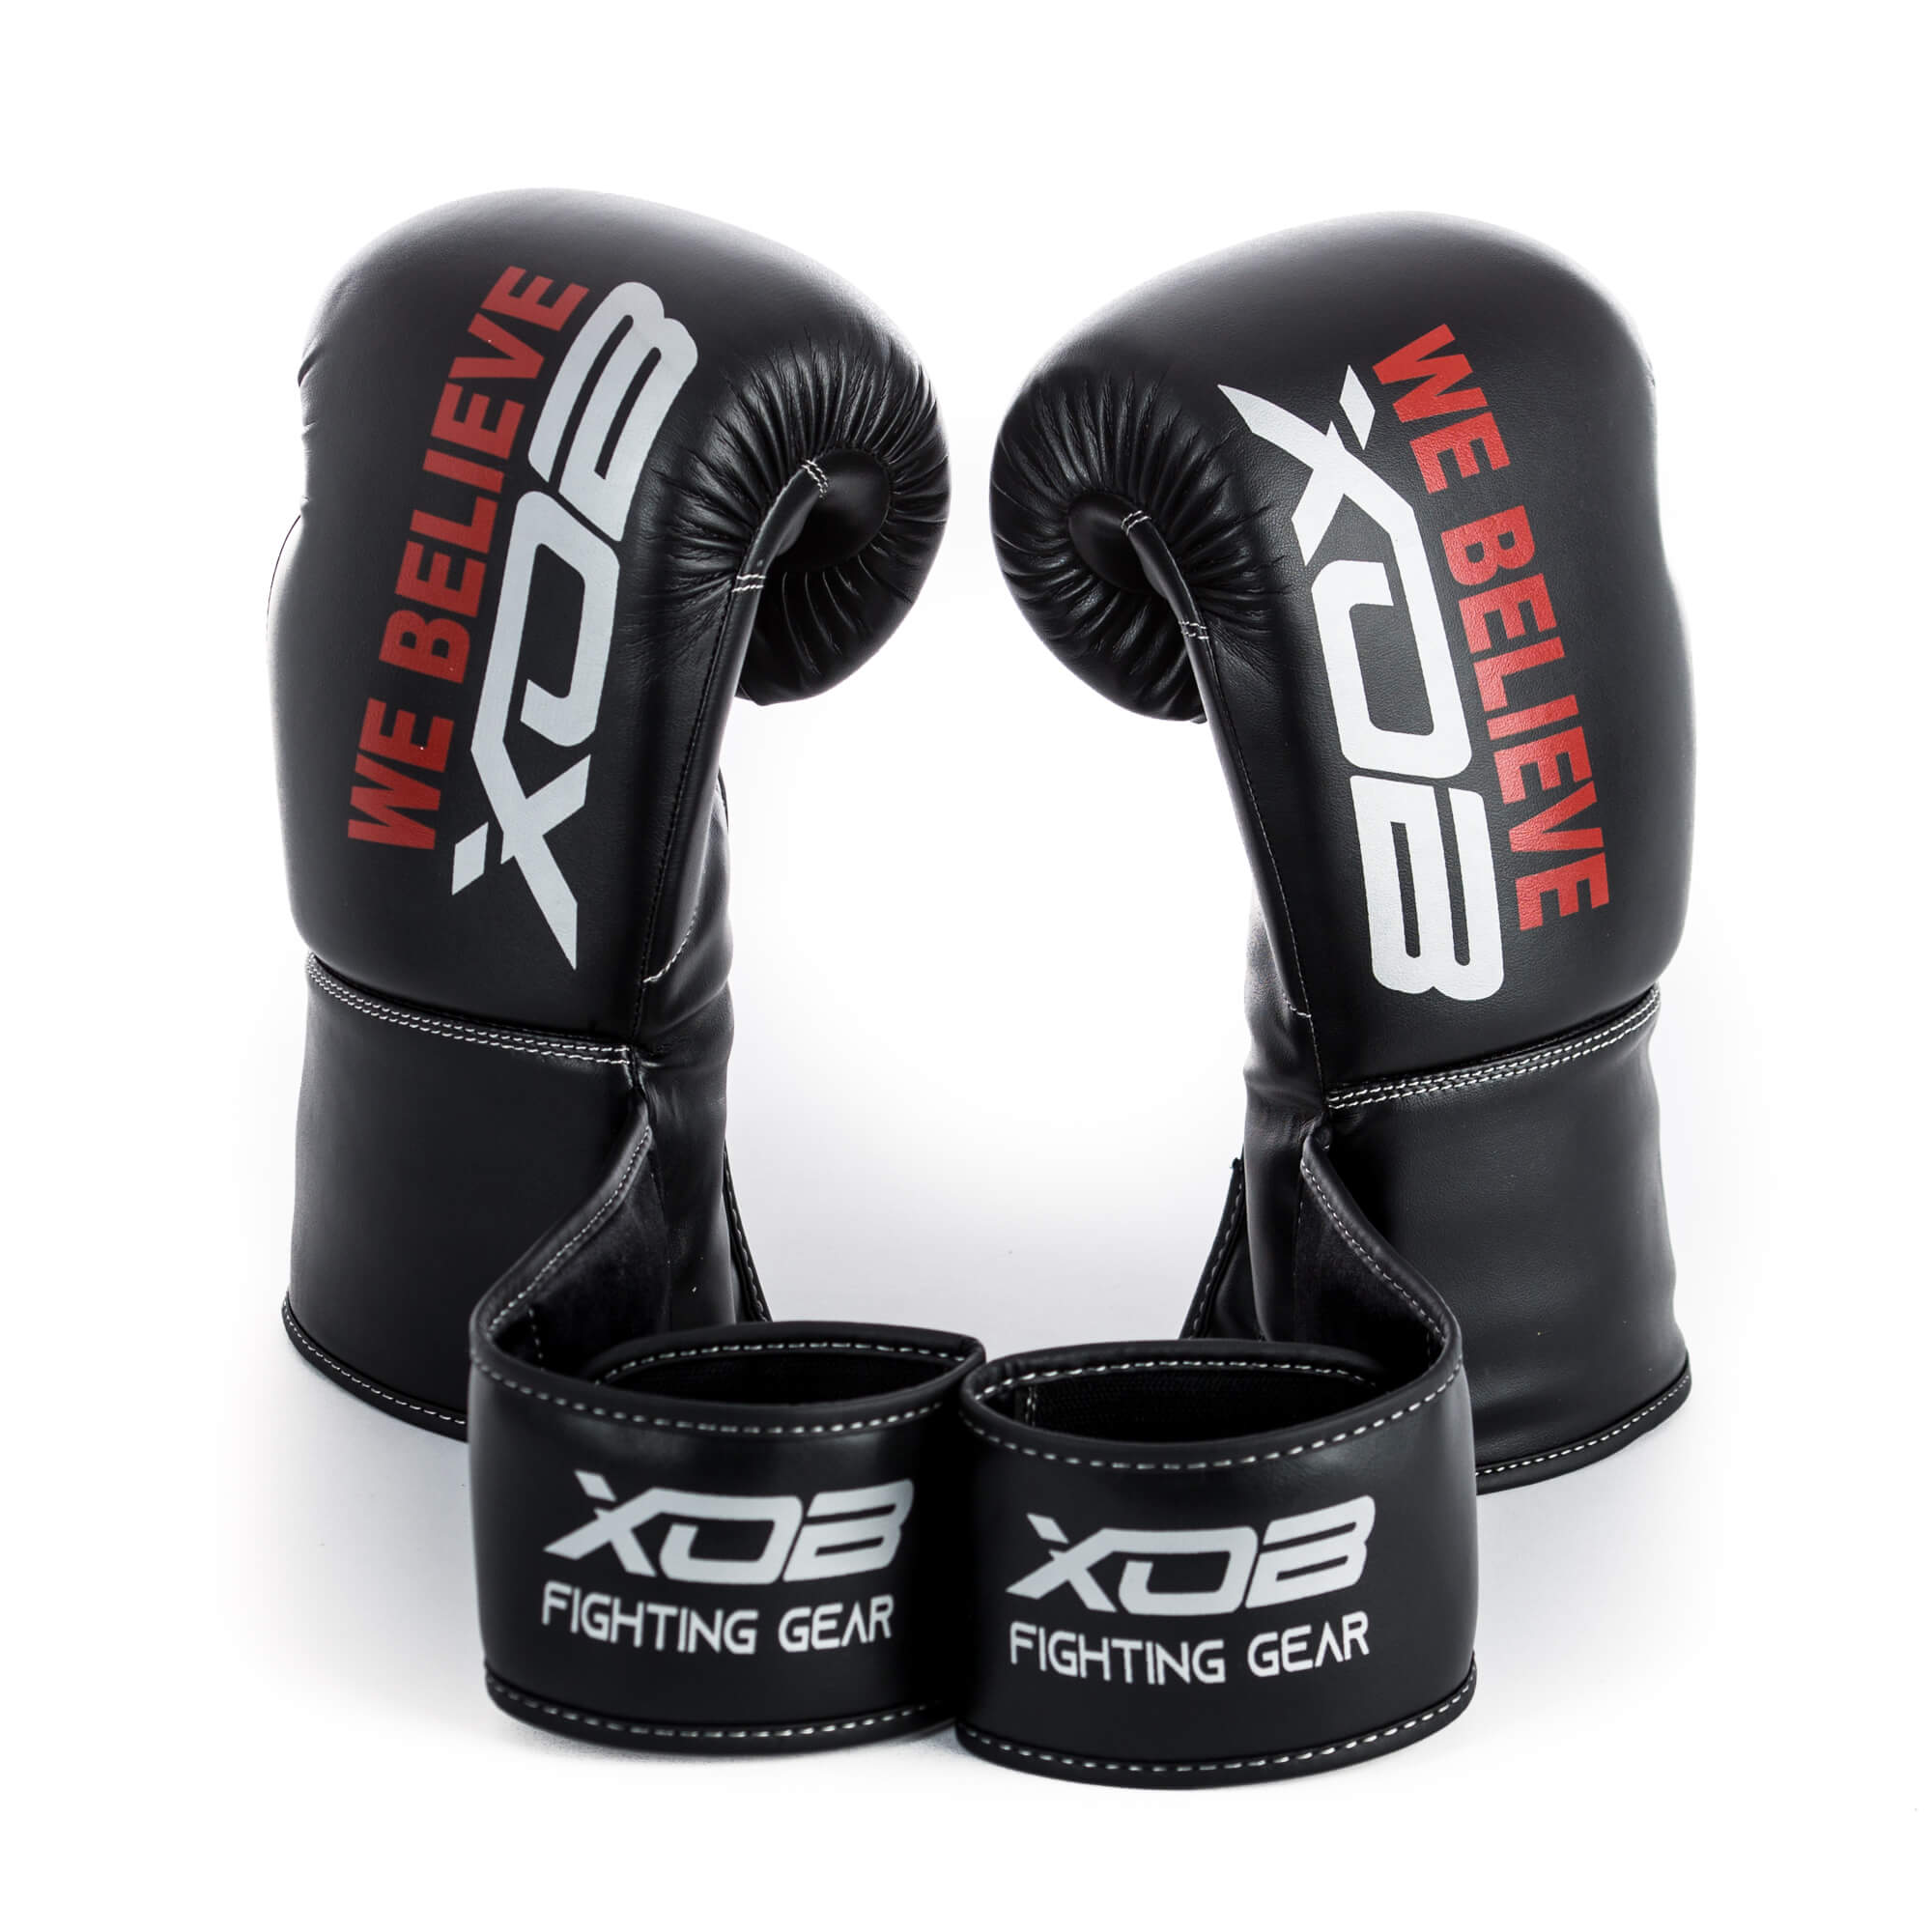 XOB Shadow Velcro Boxing Gloves - Black & Silver